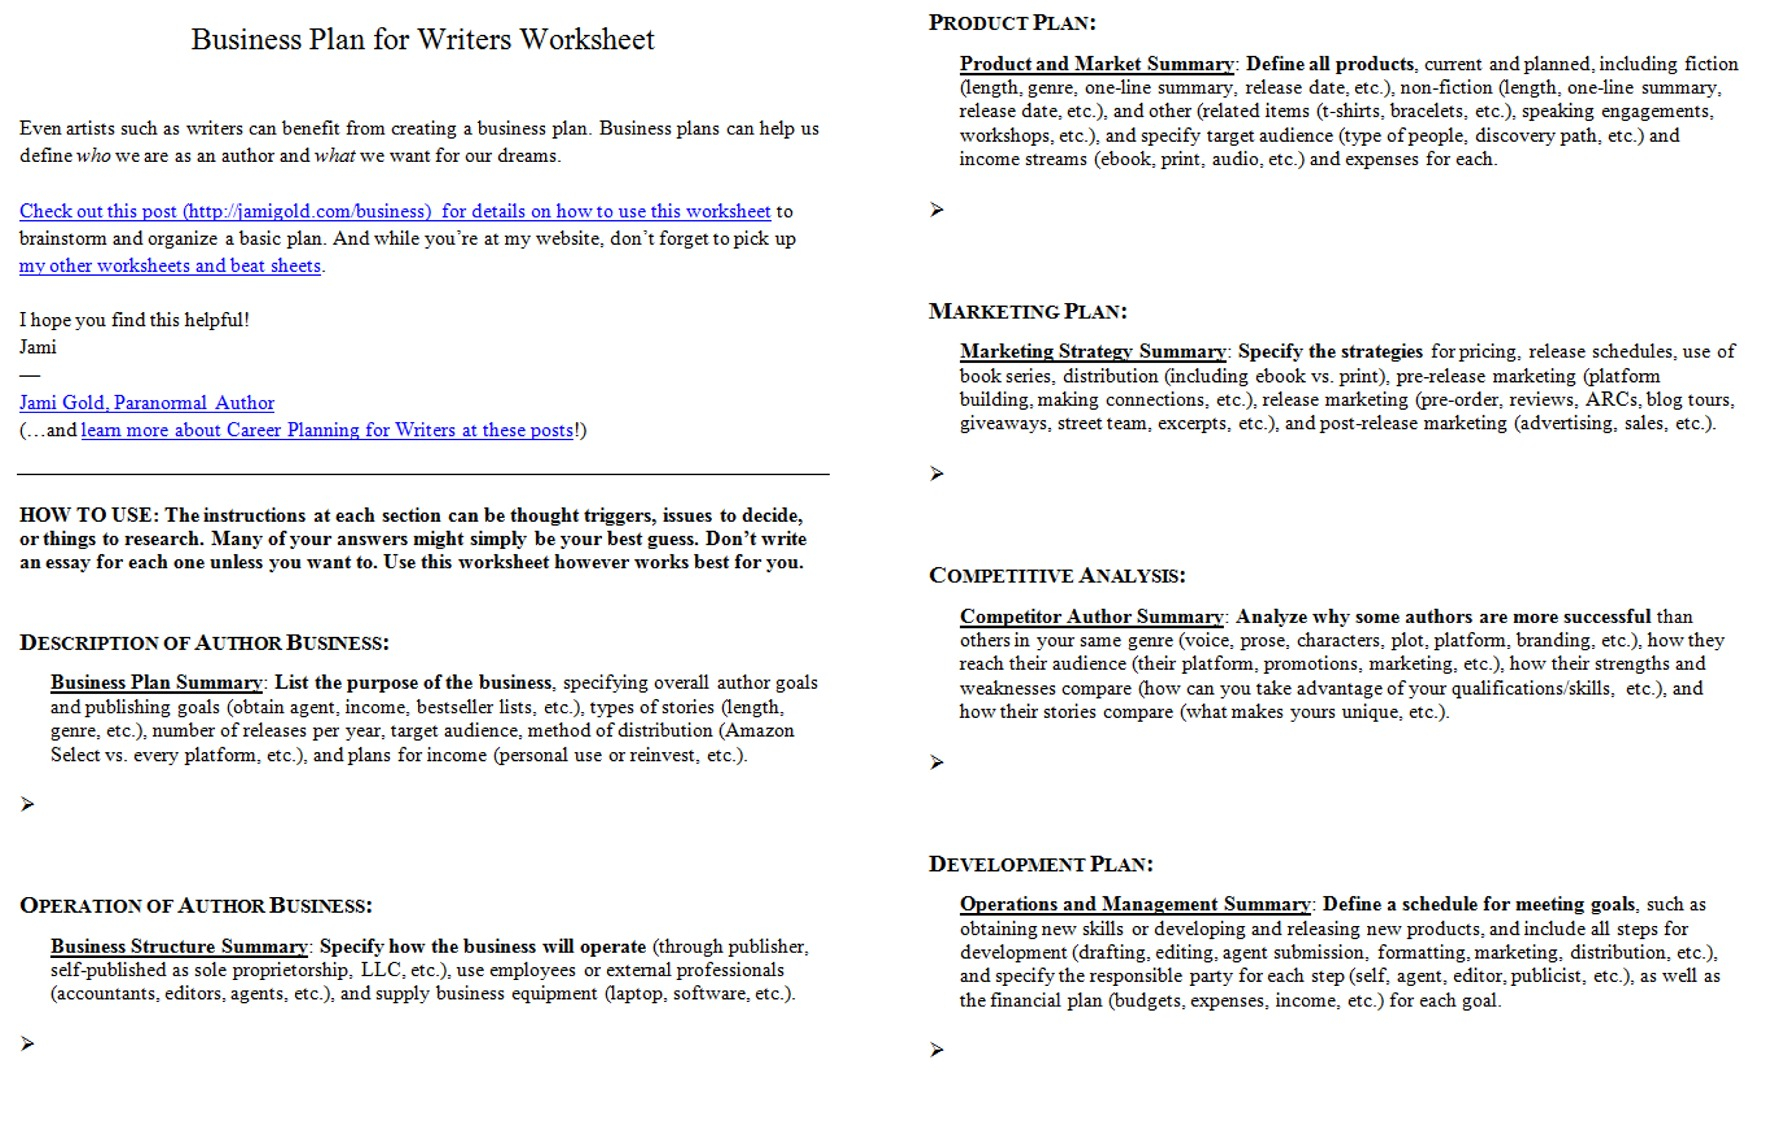 Proatmealus  Fascinating Worksheets For Writers  Jami Gold Paranormal Author With Foxy Screen Shot Of Both Pages Of The Business Plan For Writers Worksheet With Amazing Connectives Worksheets Ks Also Pdf Geometry Worksheets In Addition English Editing Worksheets And Music Alphabet Worksheets As Well As  Worksheets Additionally Year  Area And Perimeter Worksheets From Jamigoldcom With Proatmealus  Foxy Worksheets For Writers  Jami Gold Paranormal Author With Amazing Screen Shot Of Both Pages Of The Business Plan For Writers Worksheet And Fascinating Connectives Worksheets Ks Also Pdf Geometry Worksheets In Addition English Editing Worksheets From Jamigoldcom